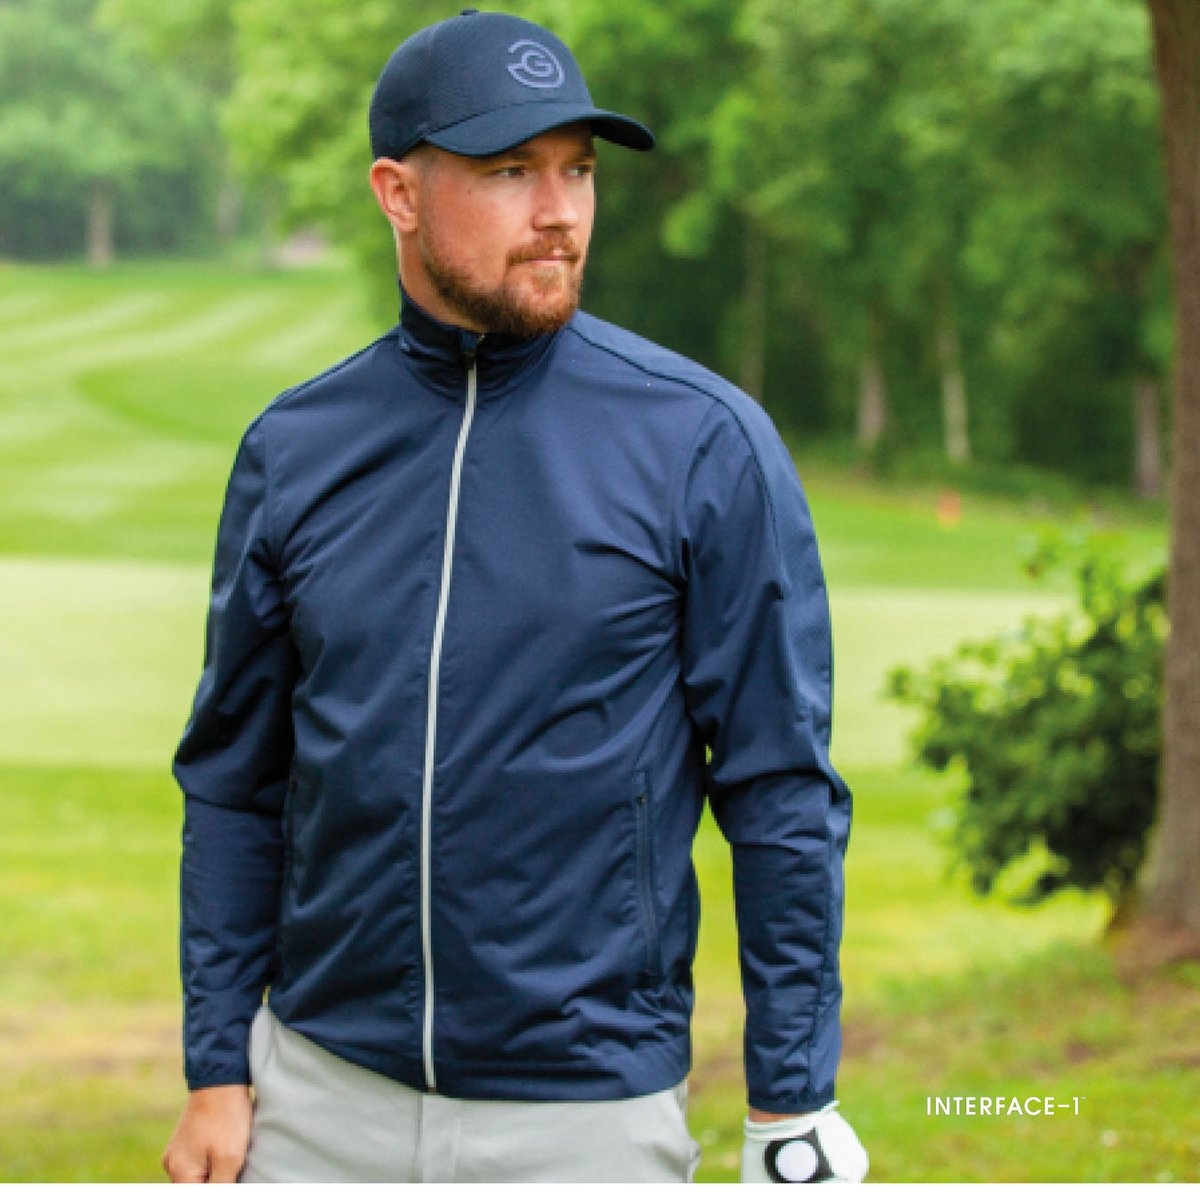 LOOK OUT FOR LAURENT 👀 ✅ Totally windproof ✅ Water repellent ✅ Highly breathable ✅ Super Stretchy Which of these 4 colors is your favorite? For more information on our INTERFACE-1™ range, please visit your local stockiest or visit galvingreen.com